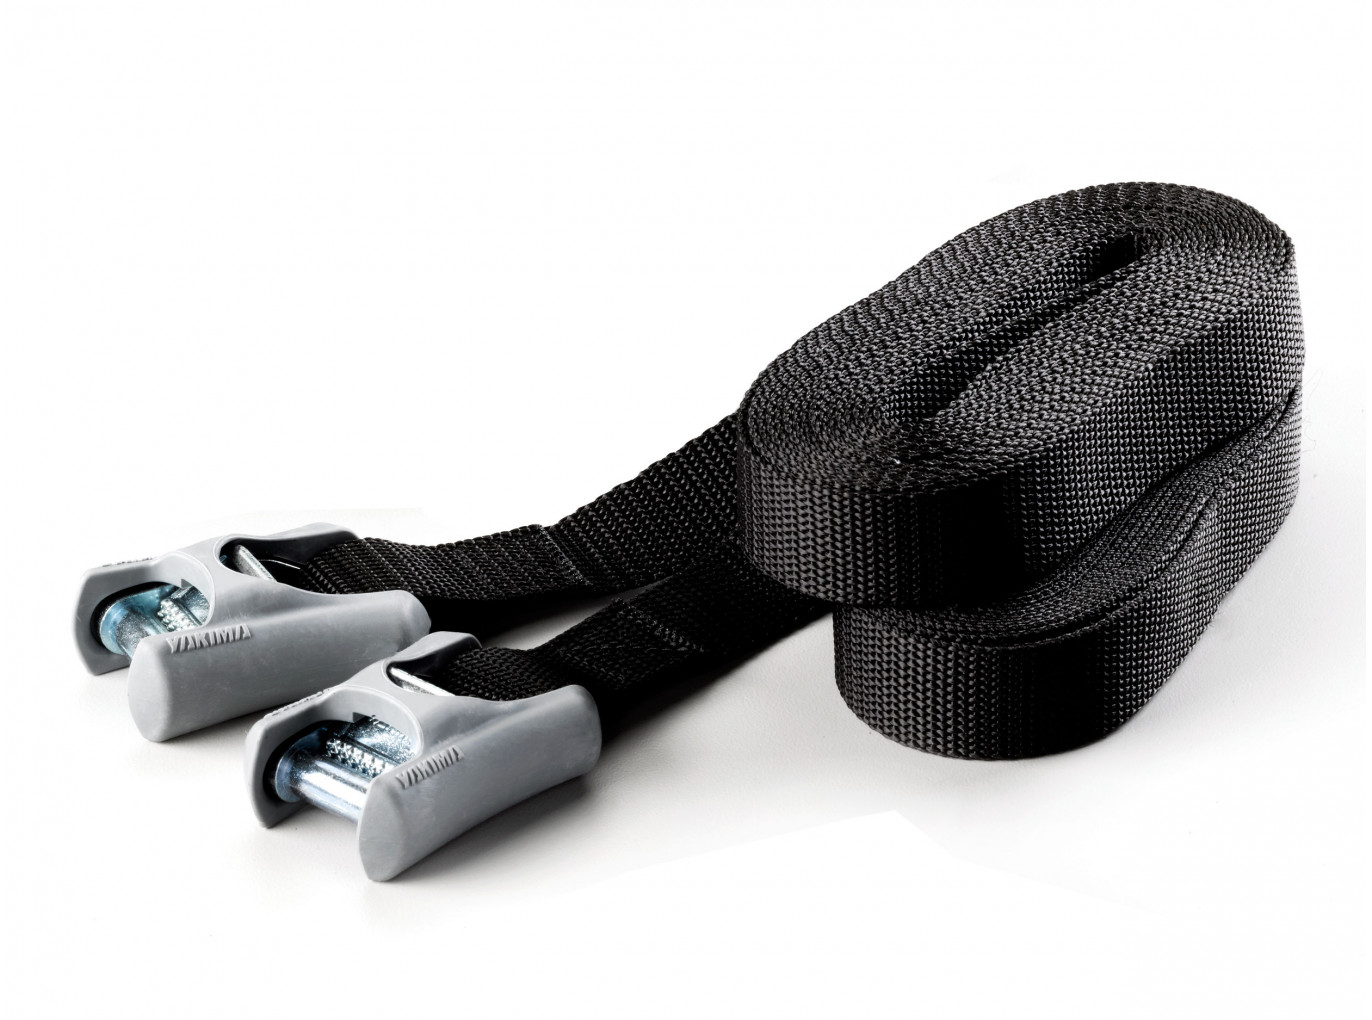 Yakima  Heavy Duty Straps Extra-Strong Tie-Down Strap With Rubber Covered Buckle